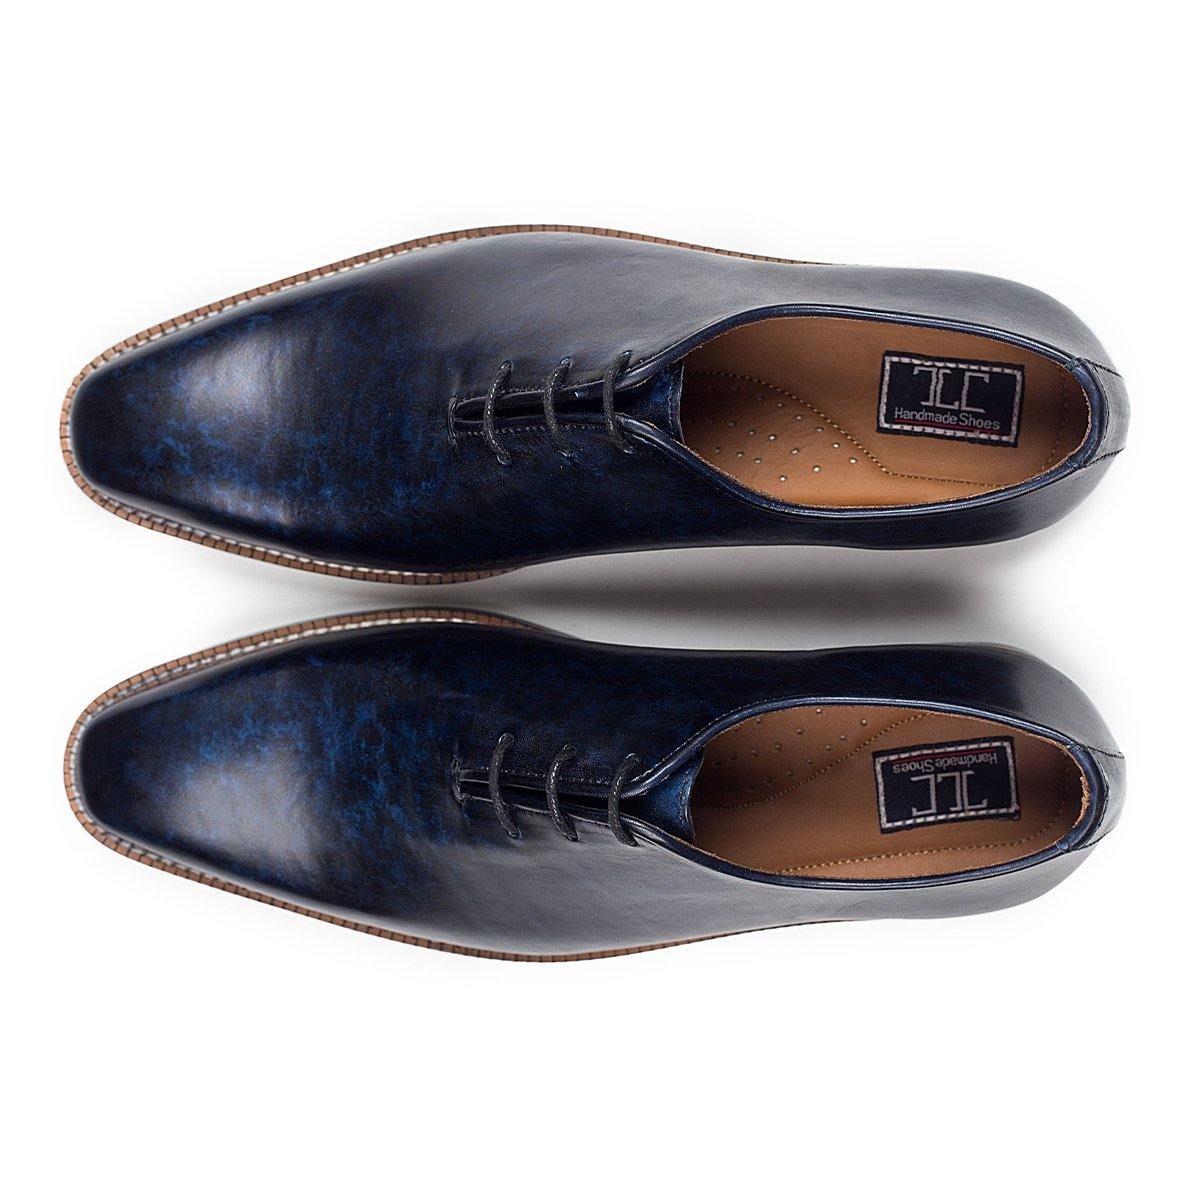 Lincoln - Wholecuts in Navy - TLC - The Leather Crafts